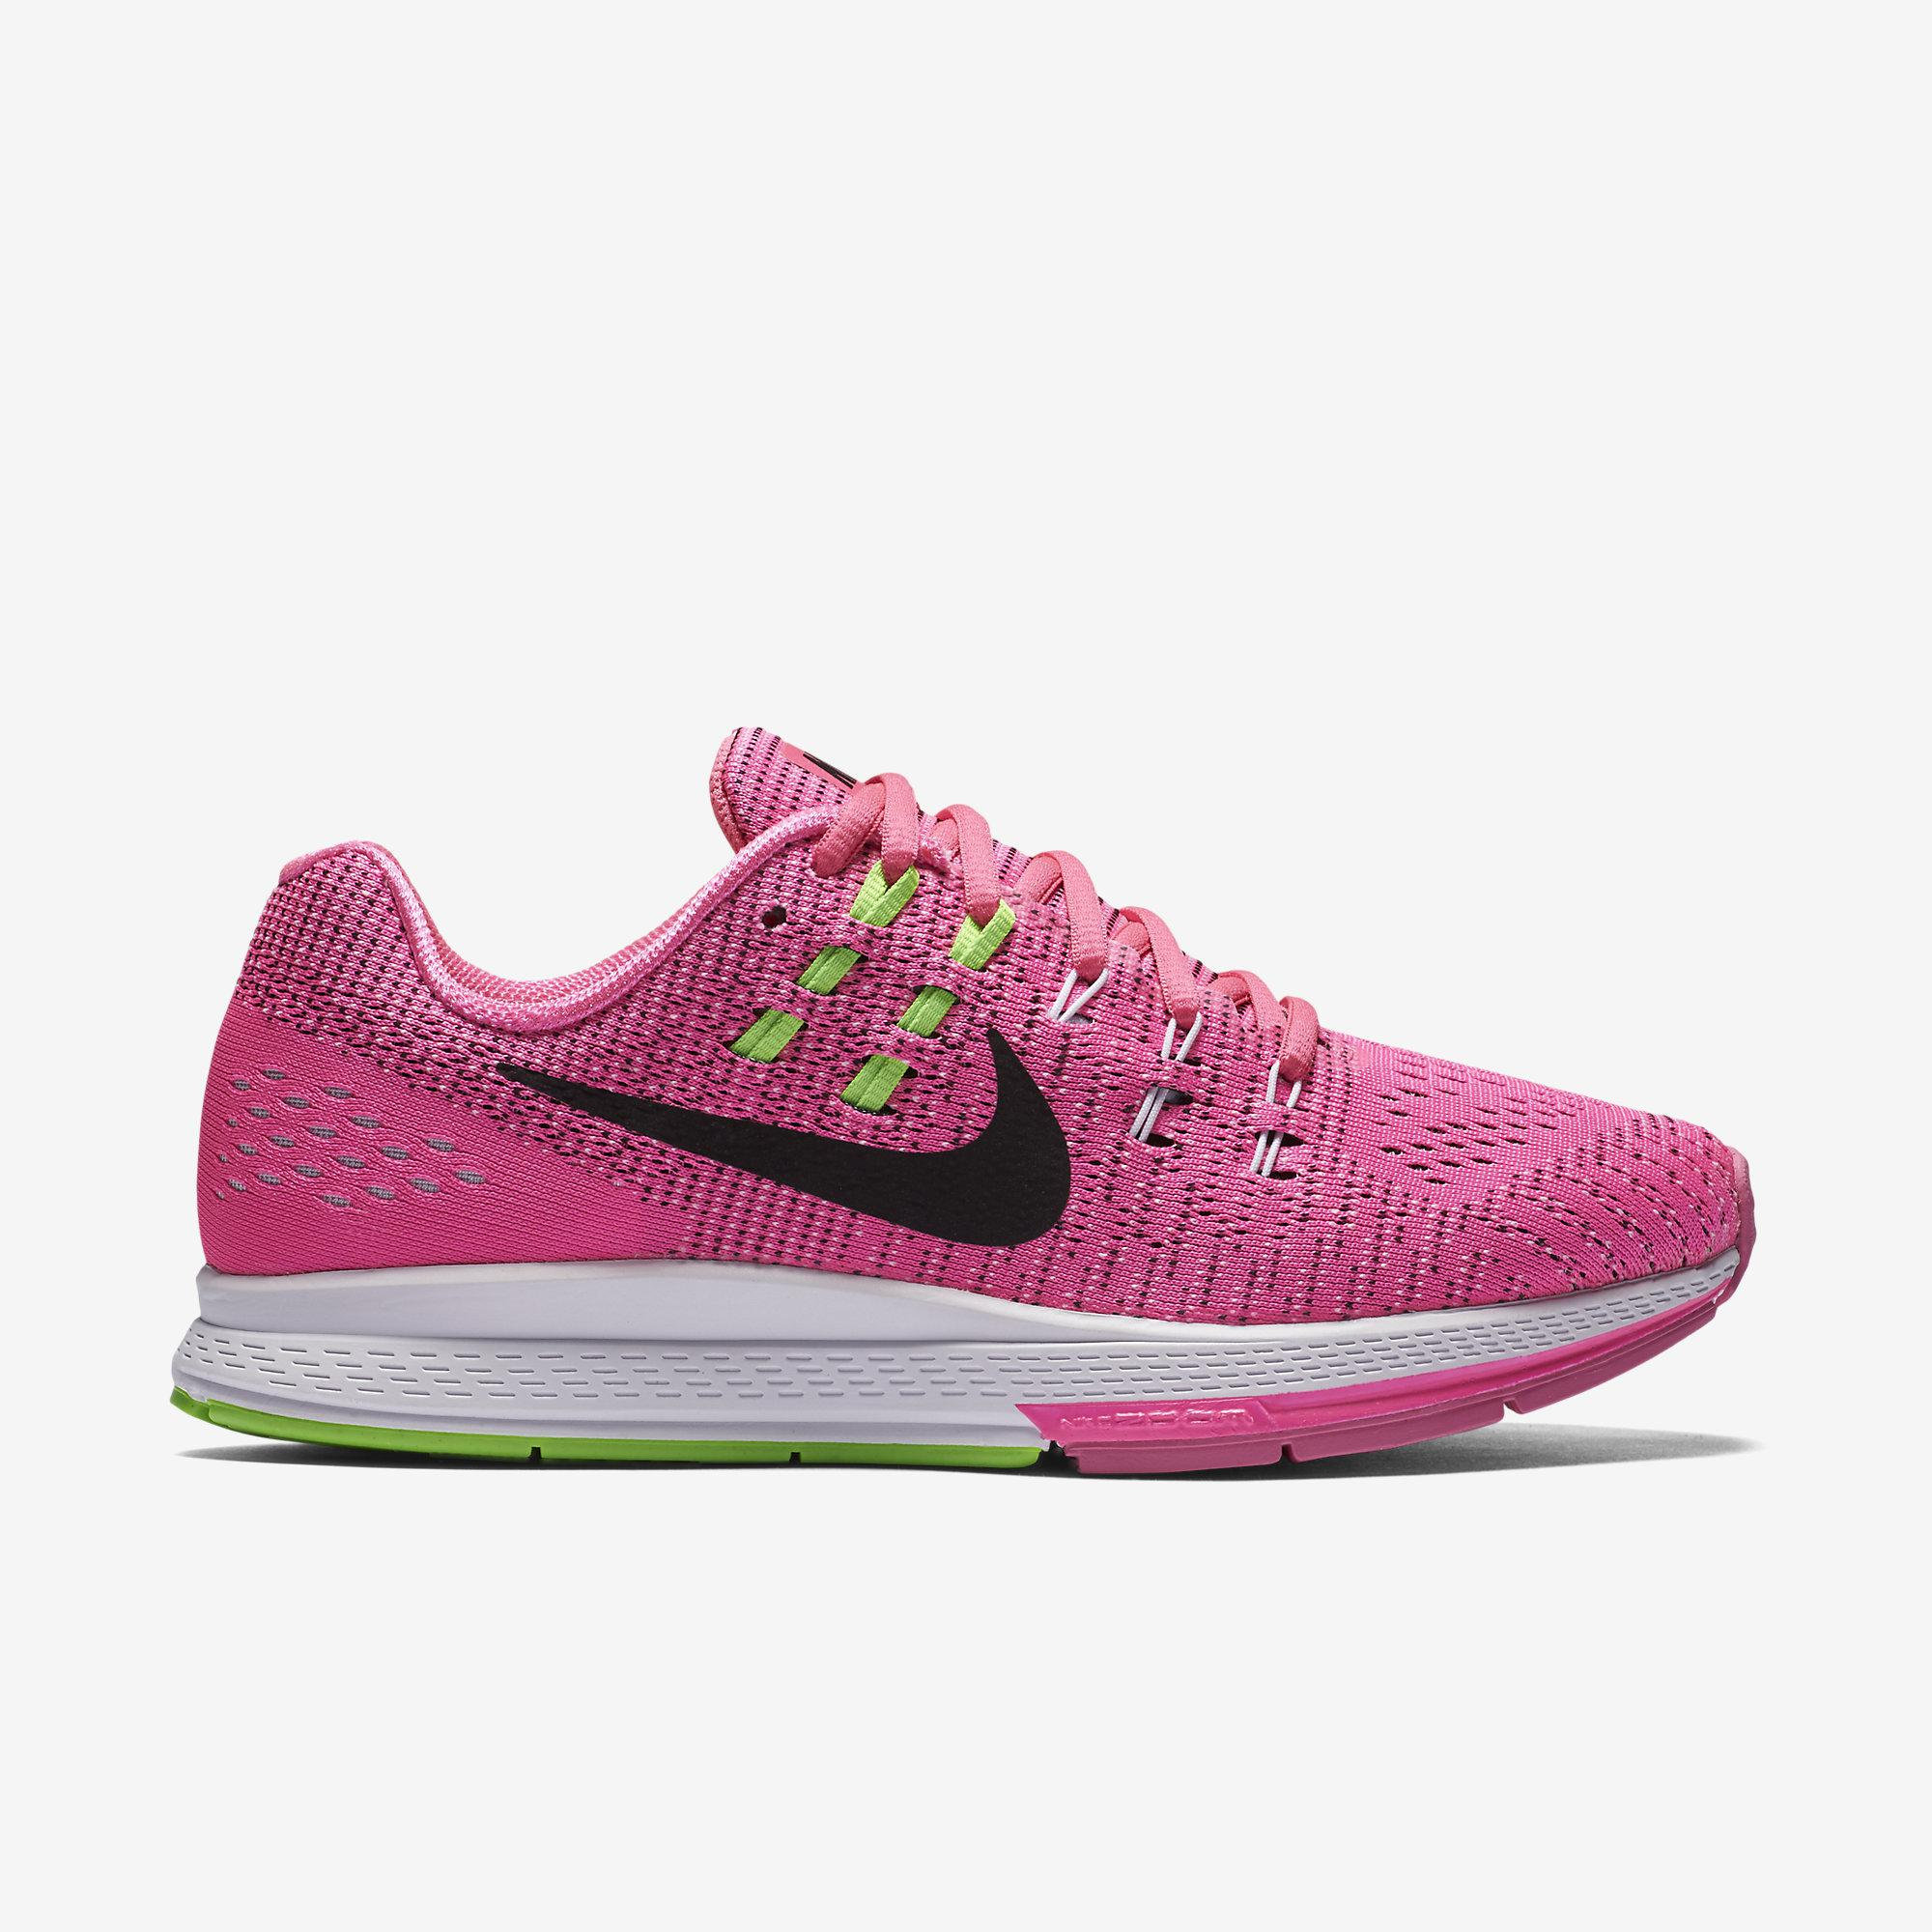 nike womens air zoom structure 19 running shoes pink - nike zoom structure 19 green pink